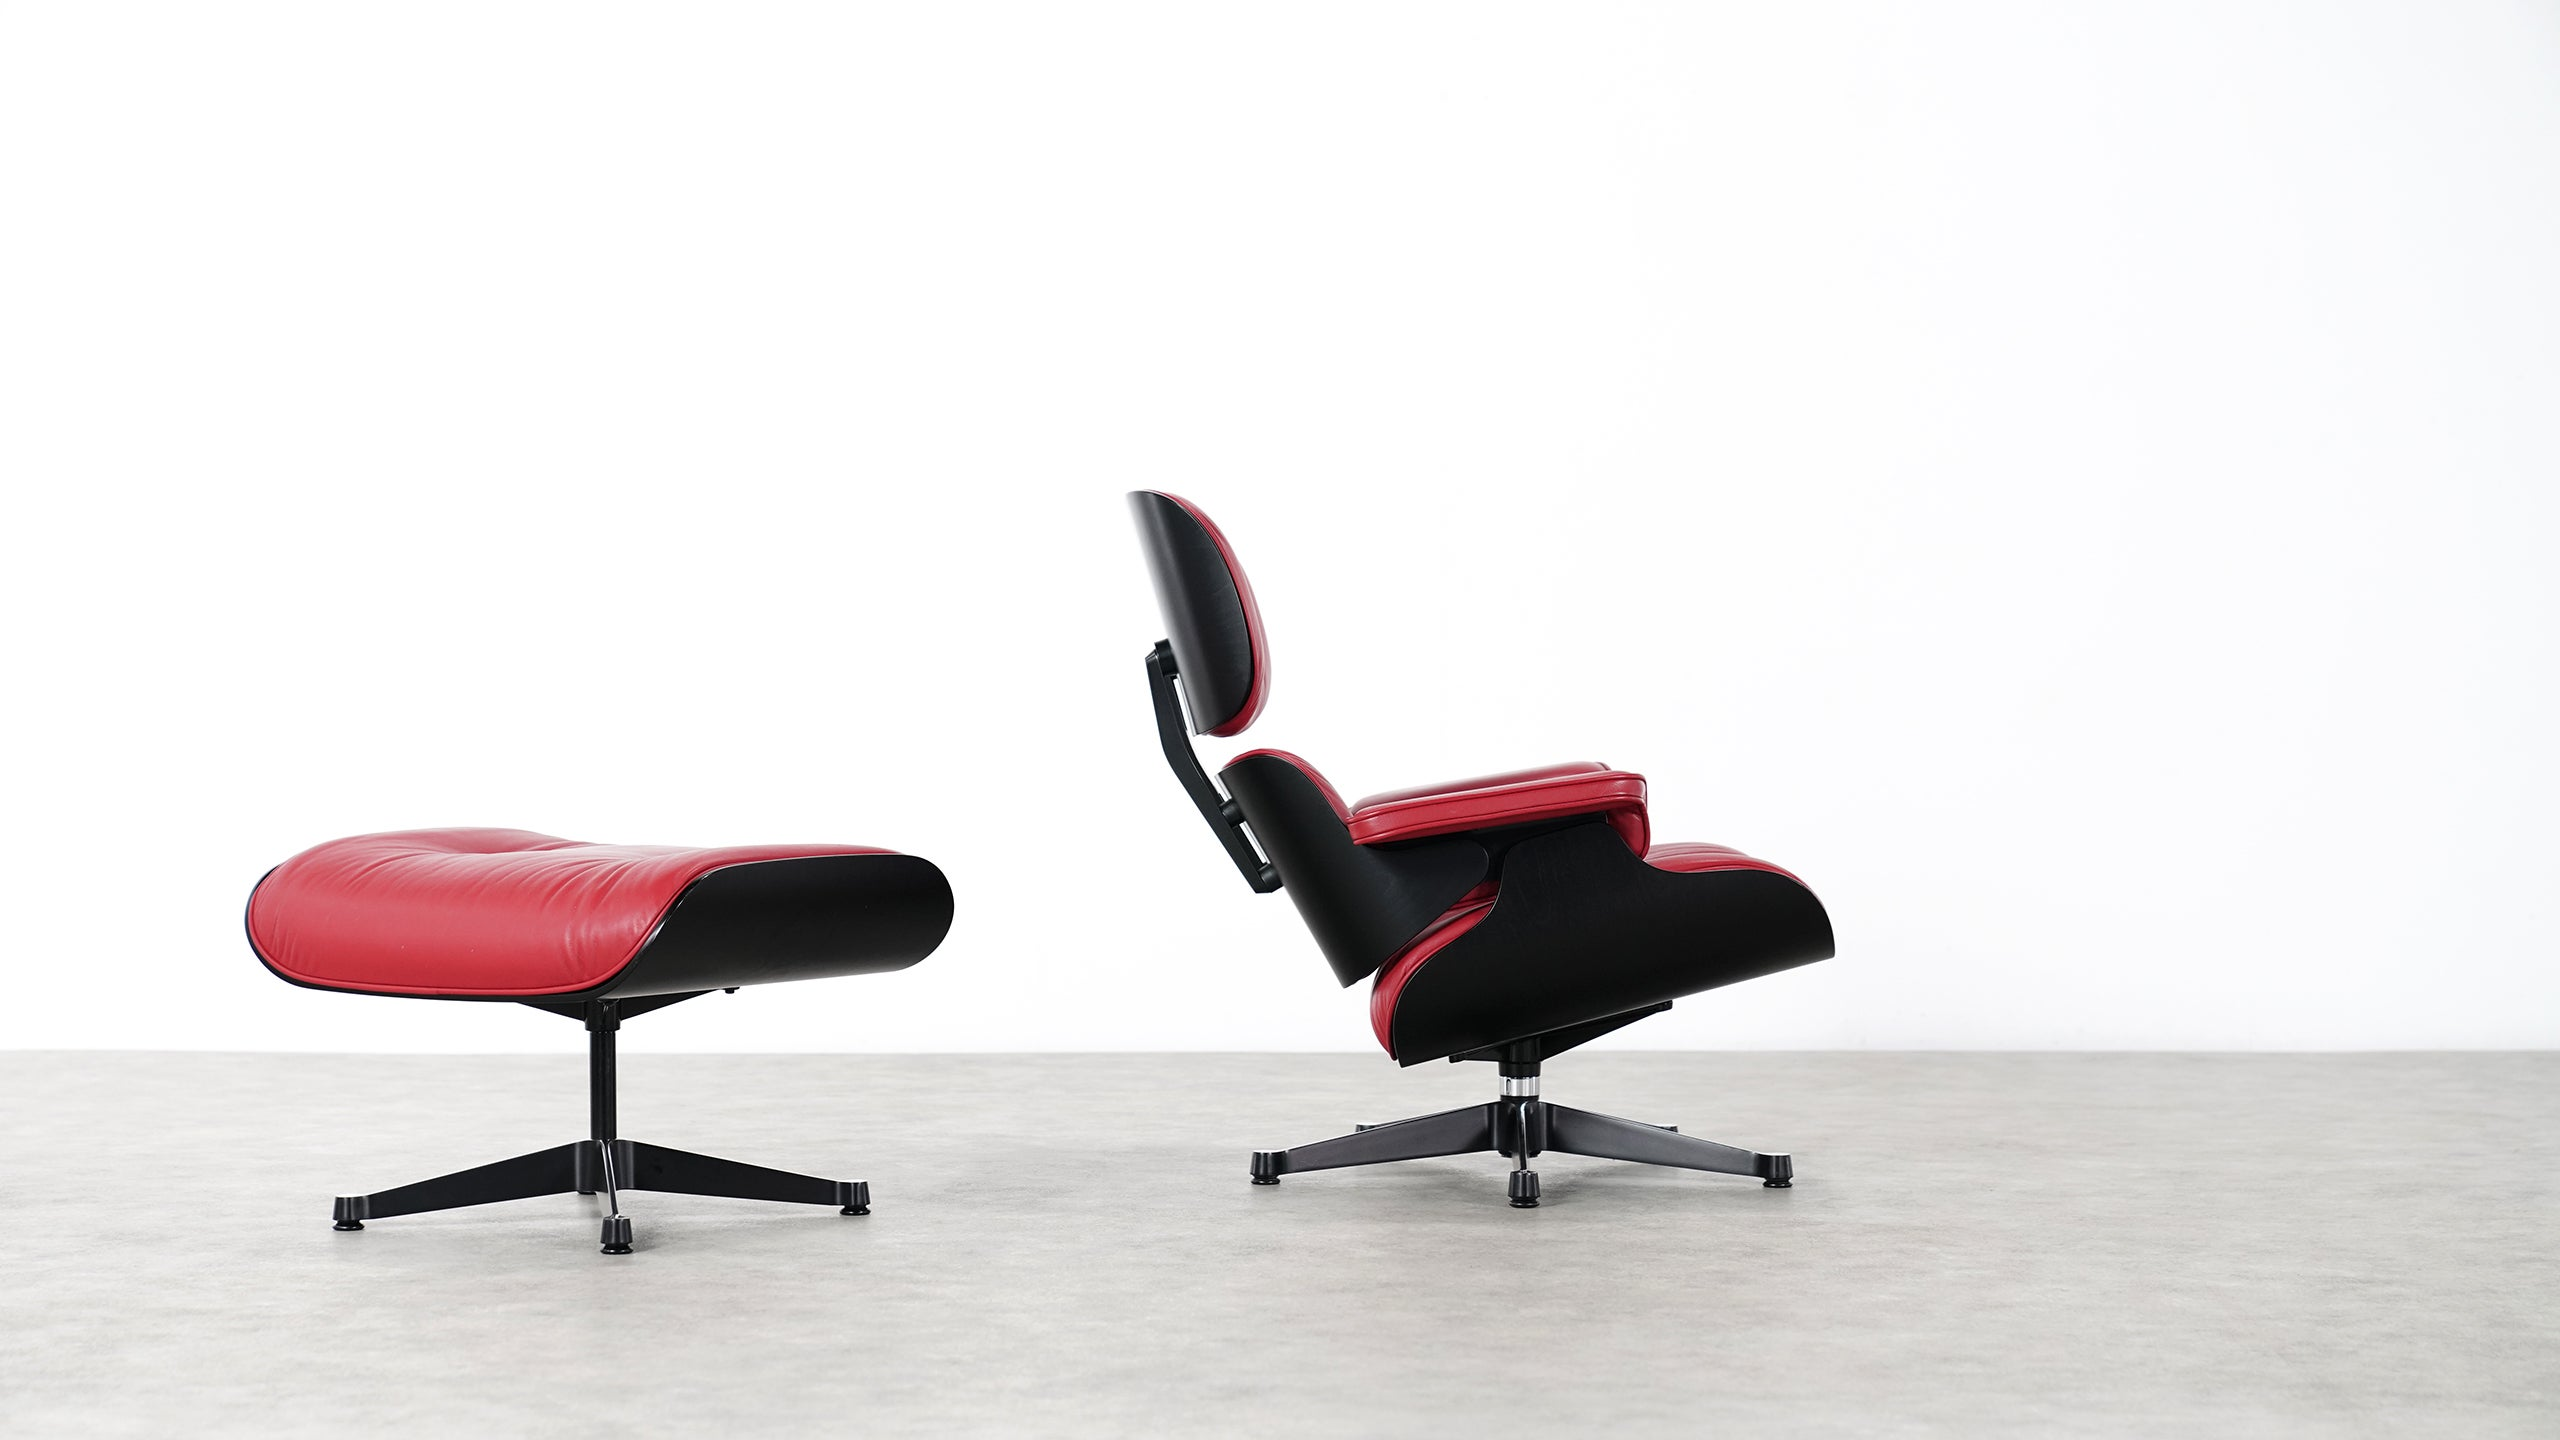 Vitra Chalres Eames : Vitra charles eames lounge chair and ottoman by vitra red leather